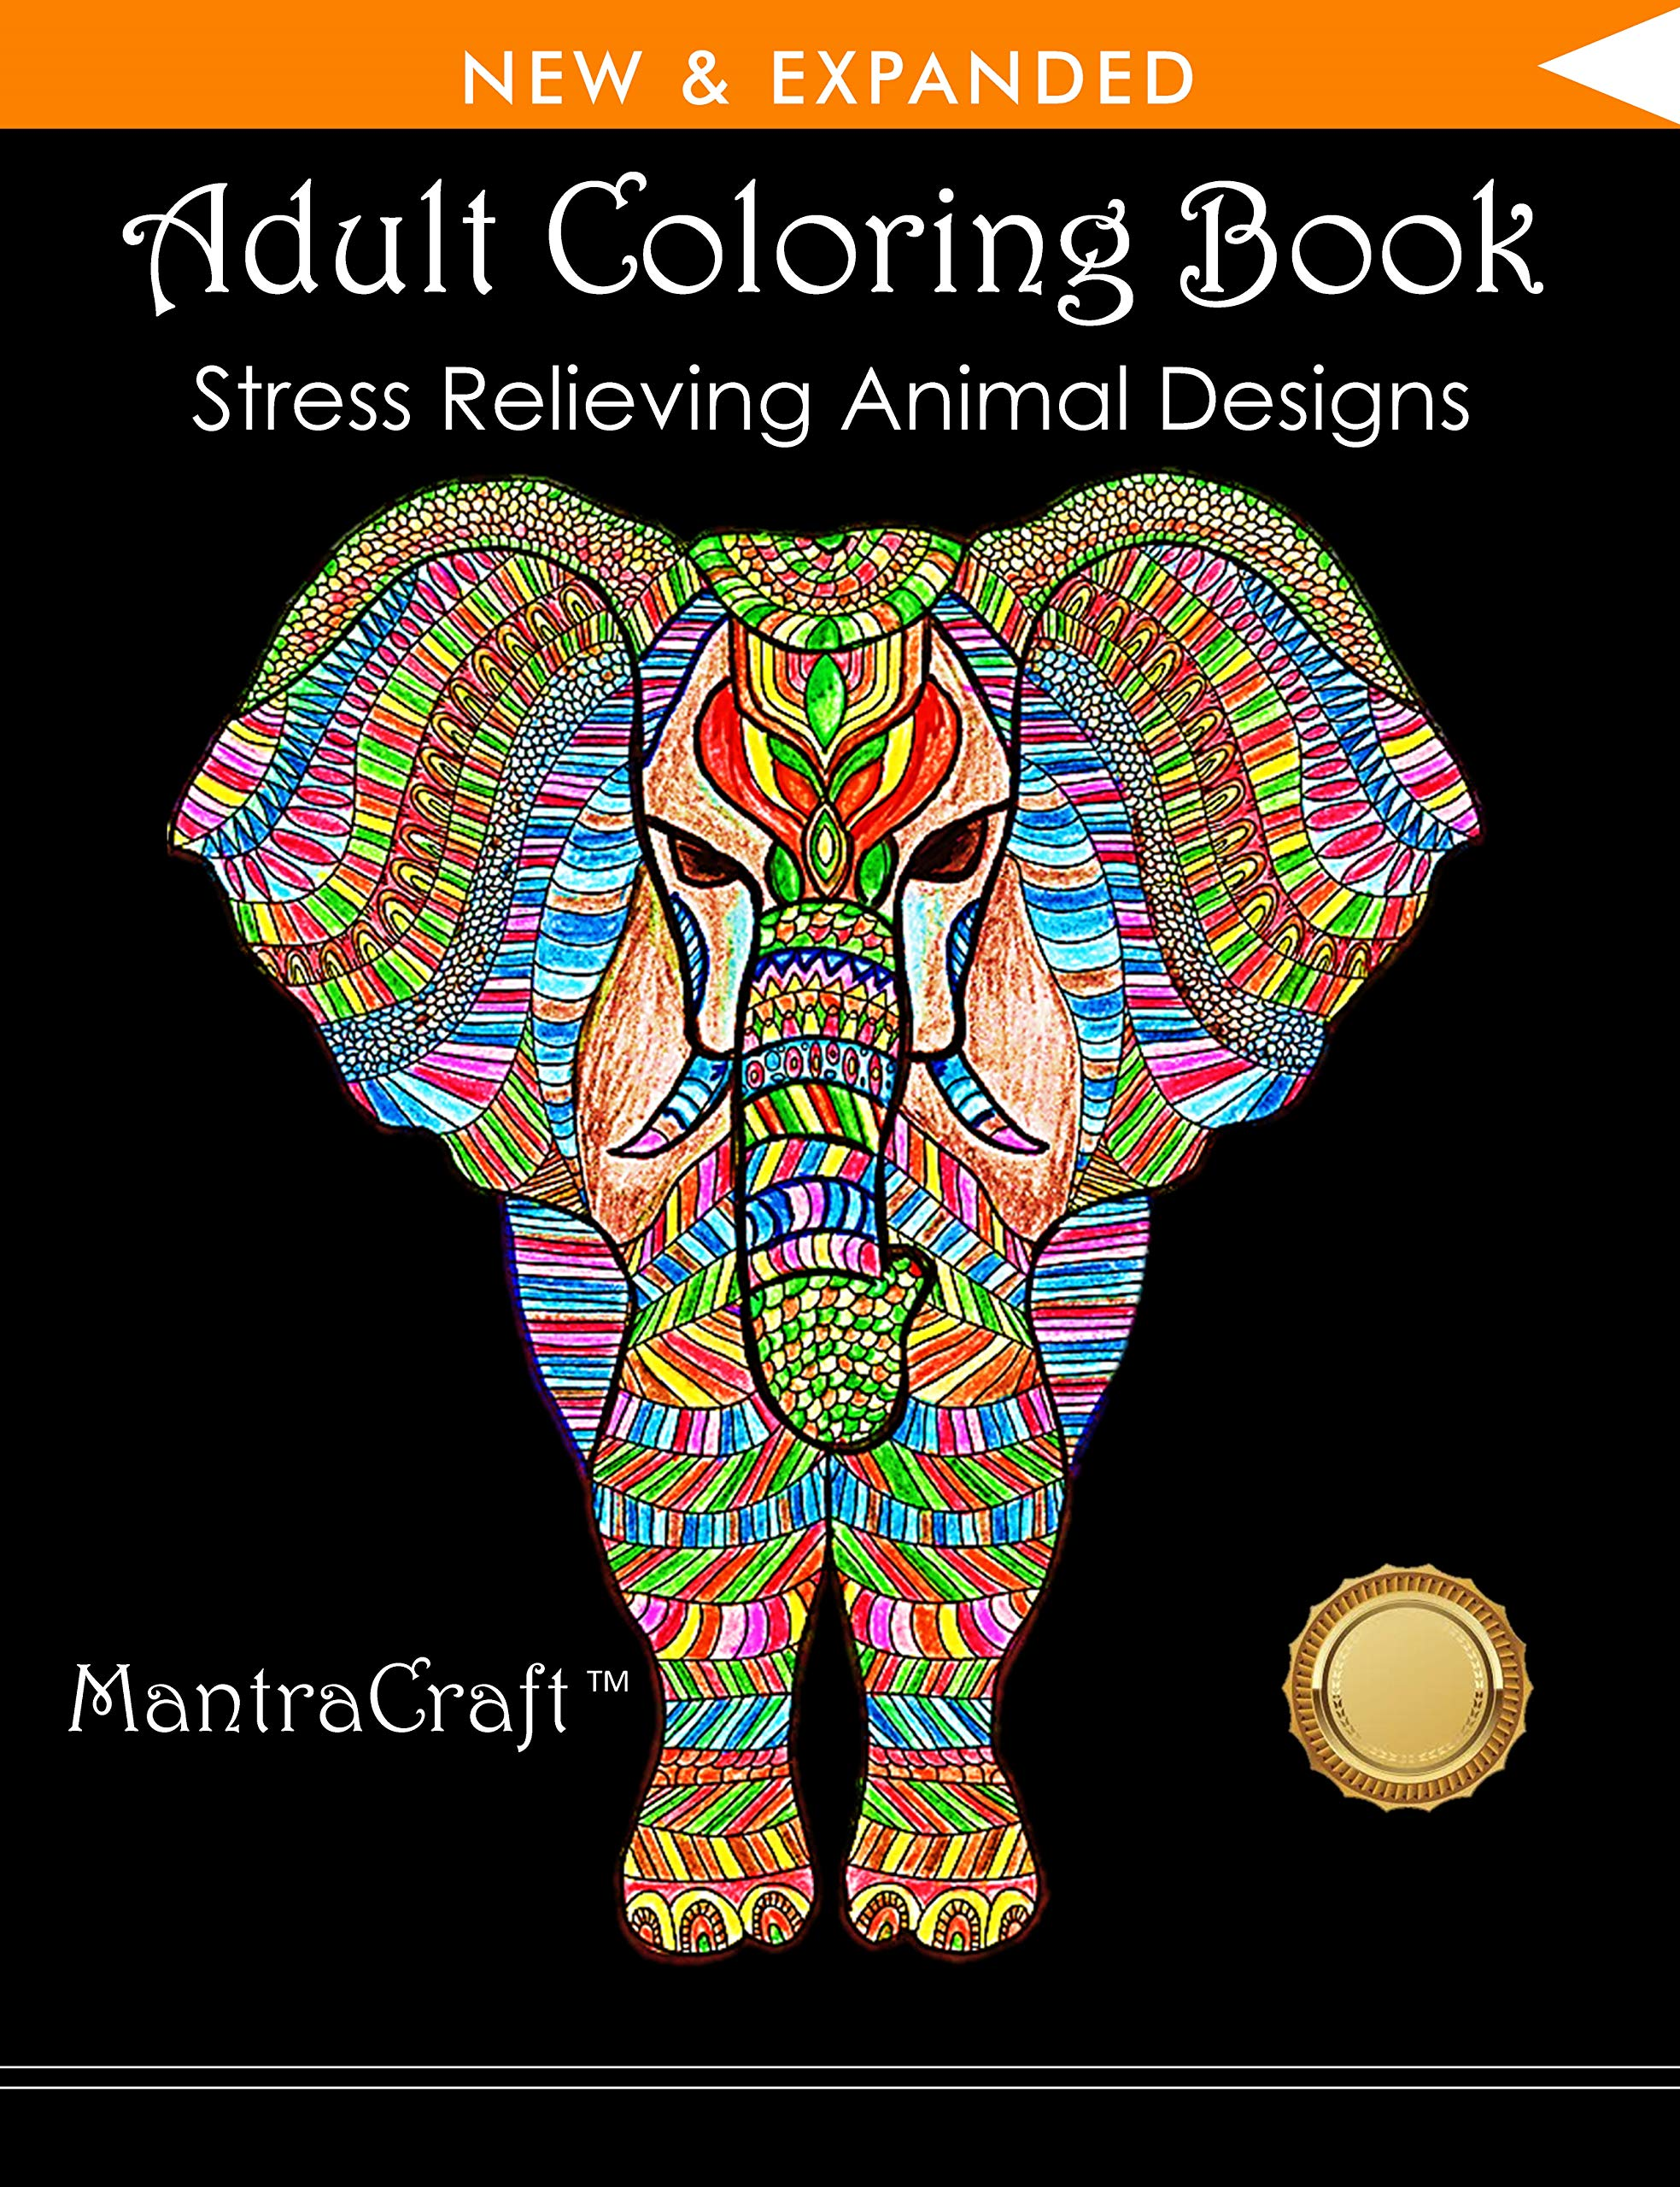 - Amazon.com: Adult Coloring Book: Stress Relieving Animal Designs